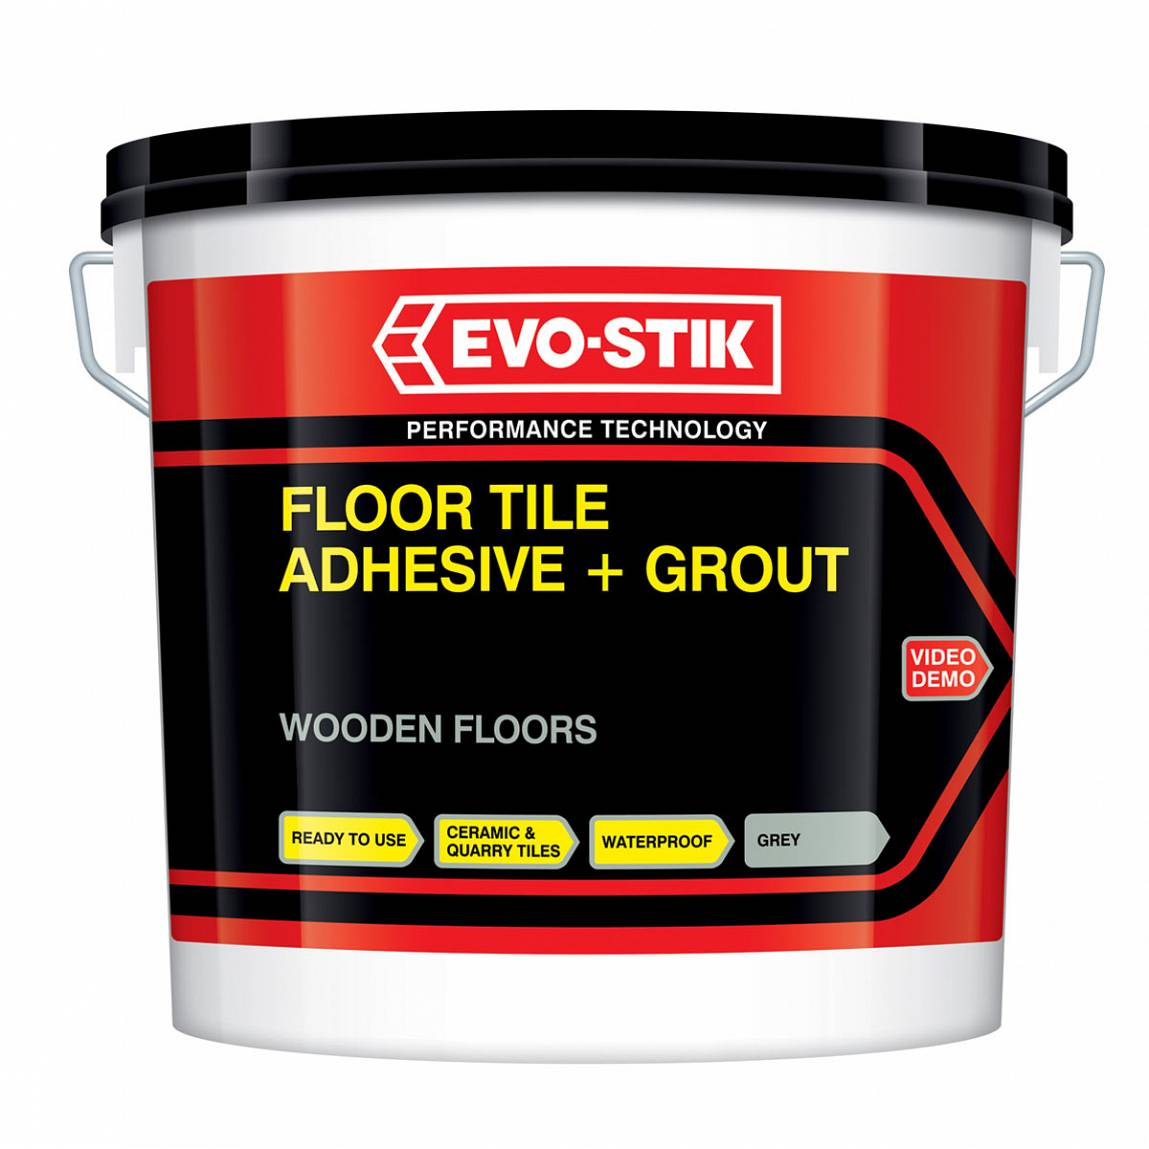 Bathroom Tile Adhesive And Grout: Wooden Floor Adhesive & Grout Large Grey 5L